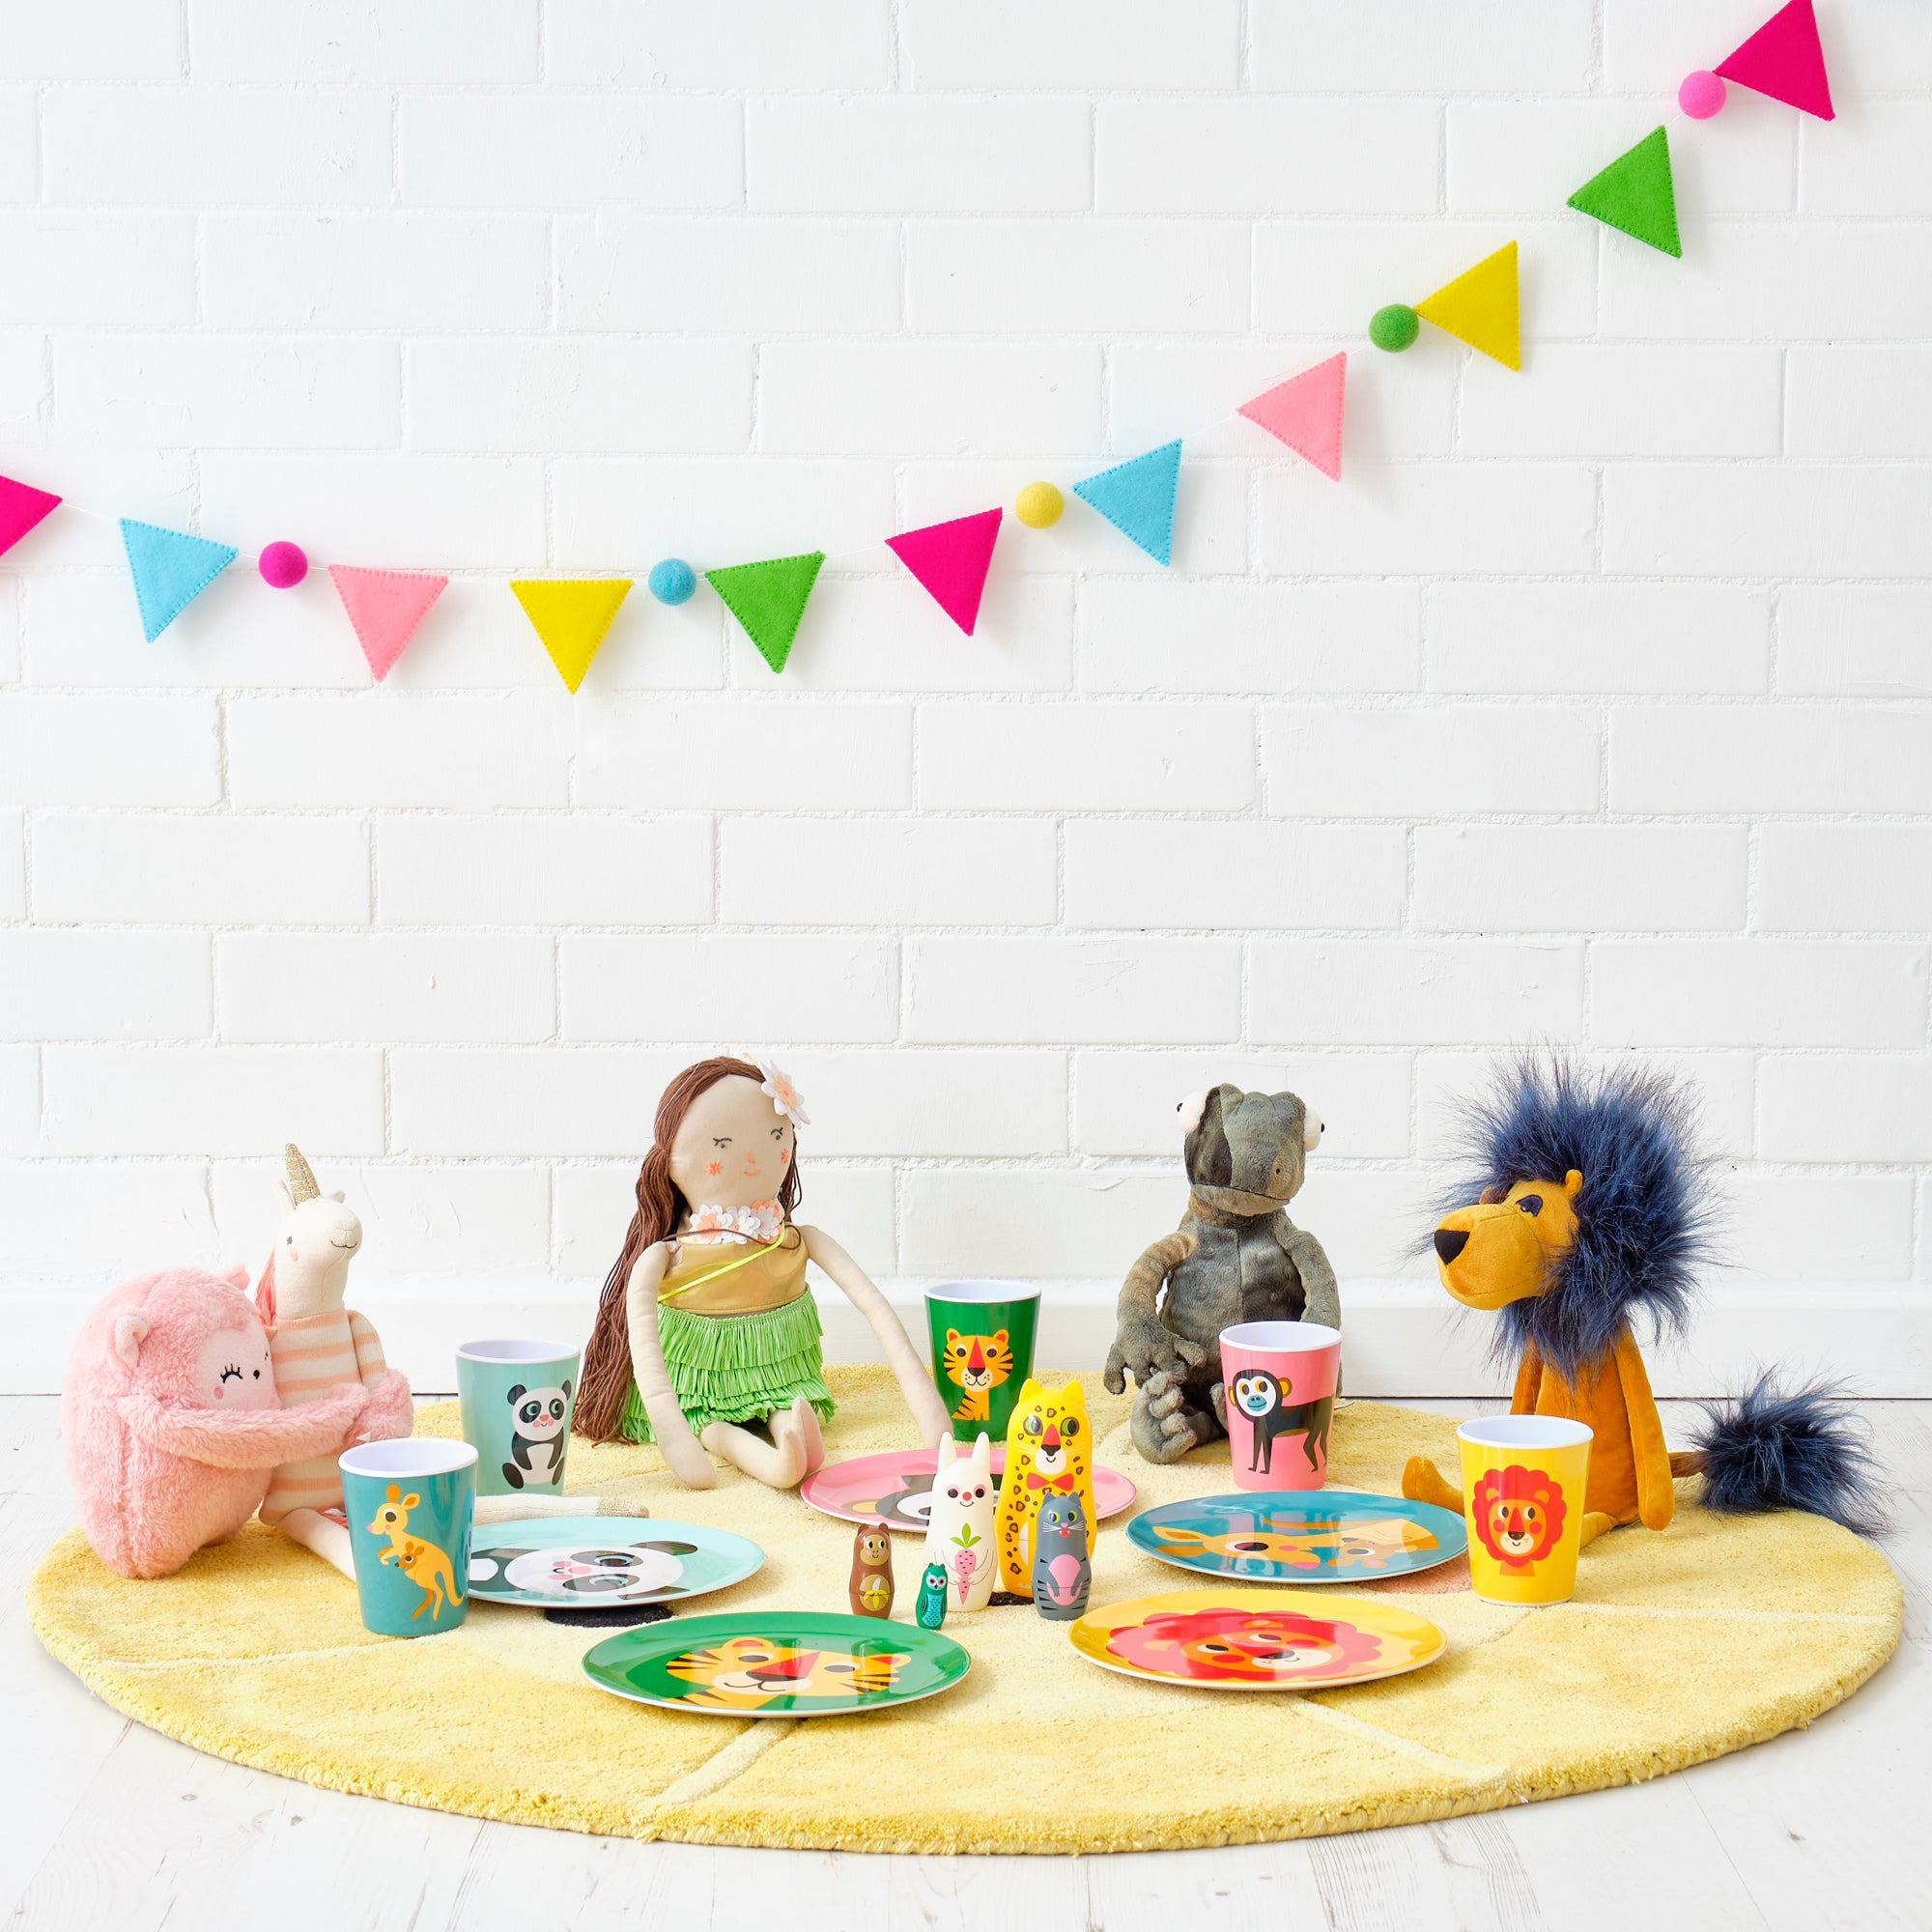 Tableware and Toys, styled by Bobby Rabbit.